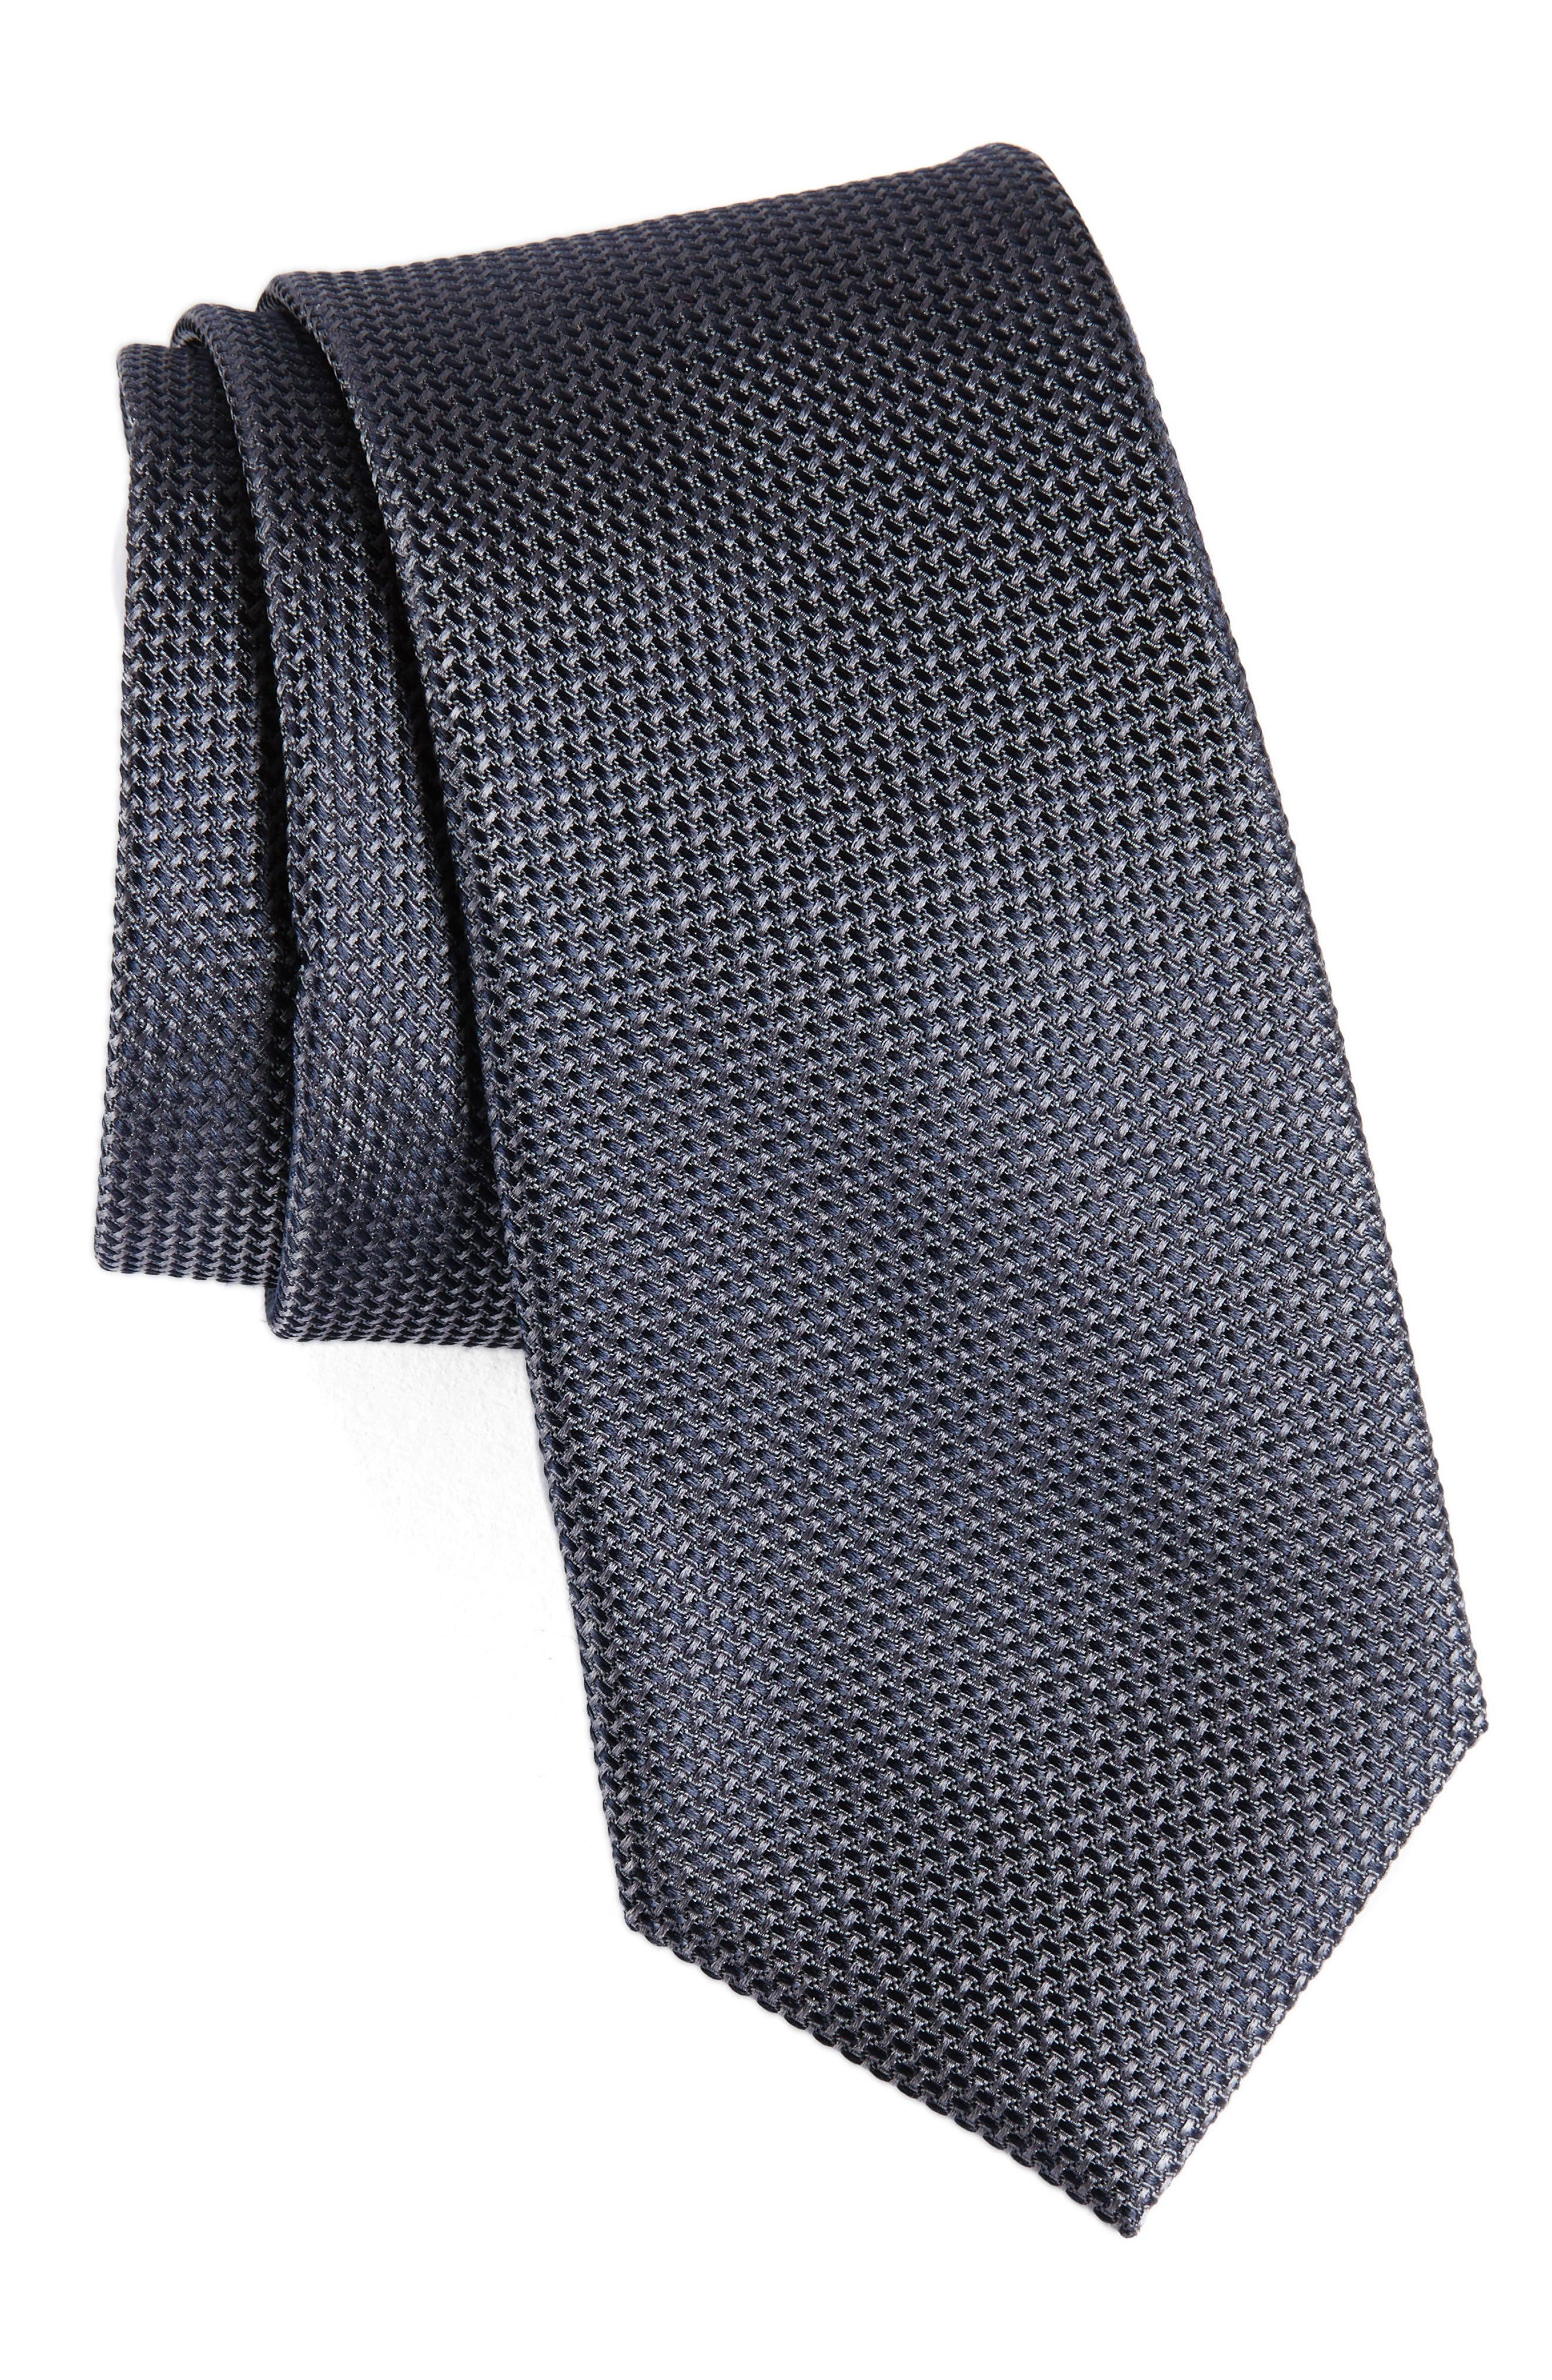 Solid Silk Tie,                             Main thumbnail 1, color,                             025